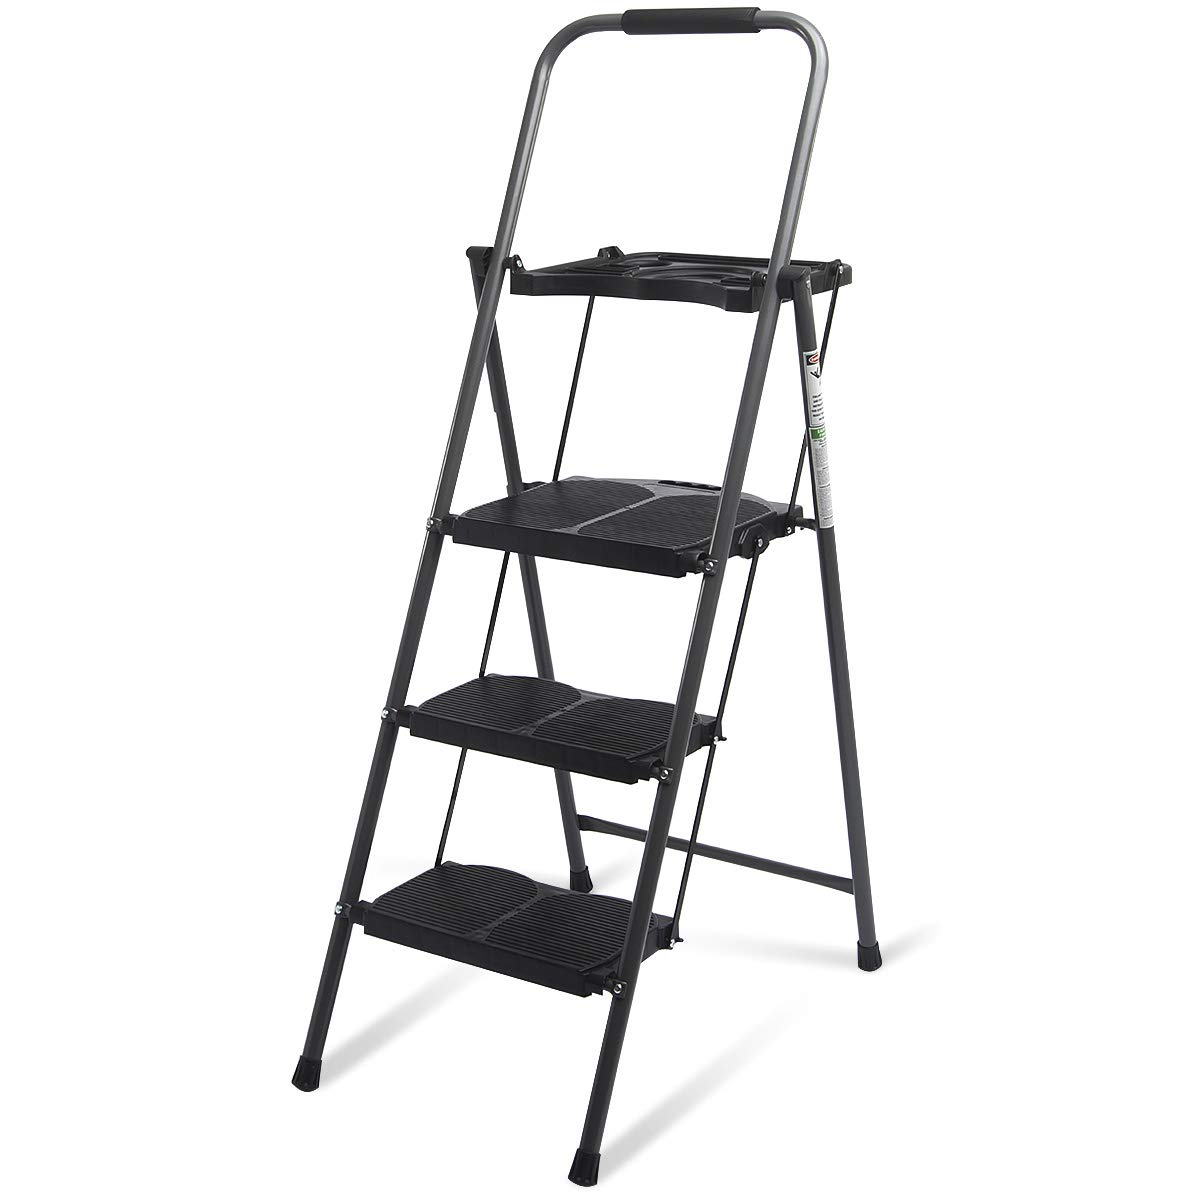 Top 10 Best Folding Step Stool Reviews in 2020 4